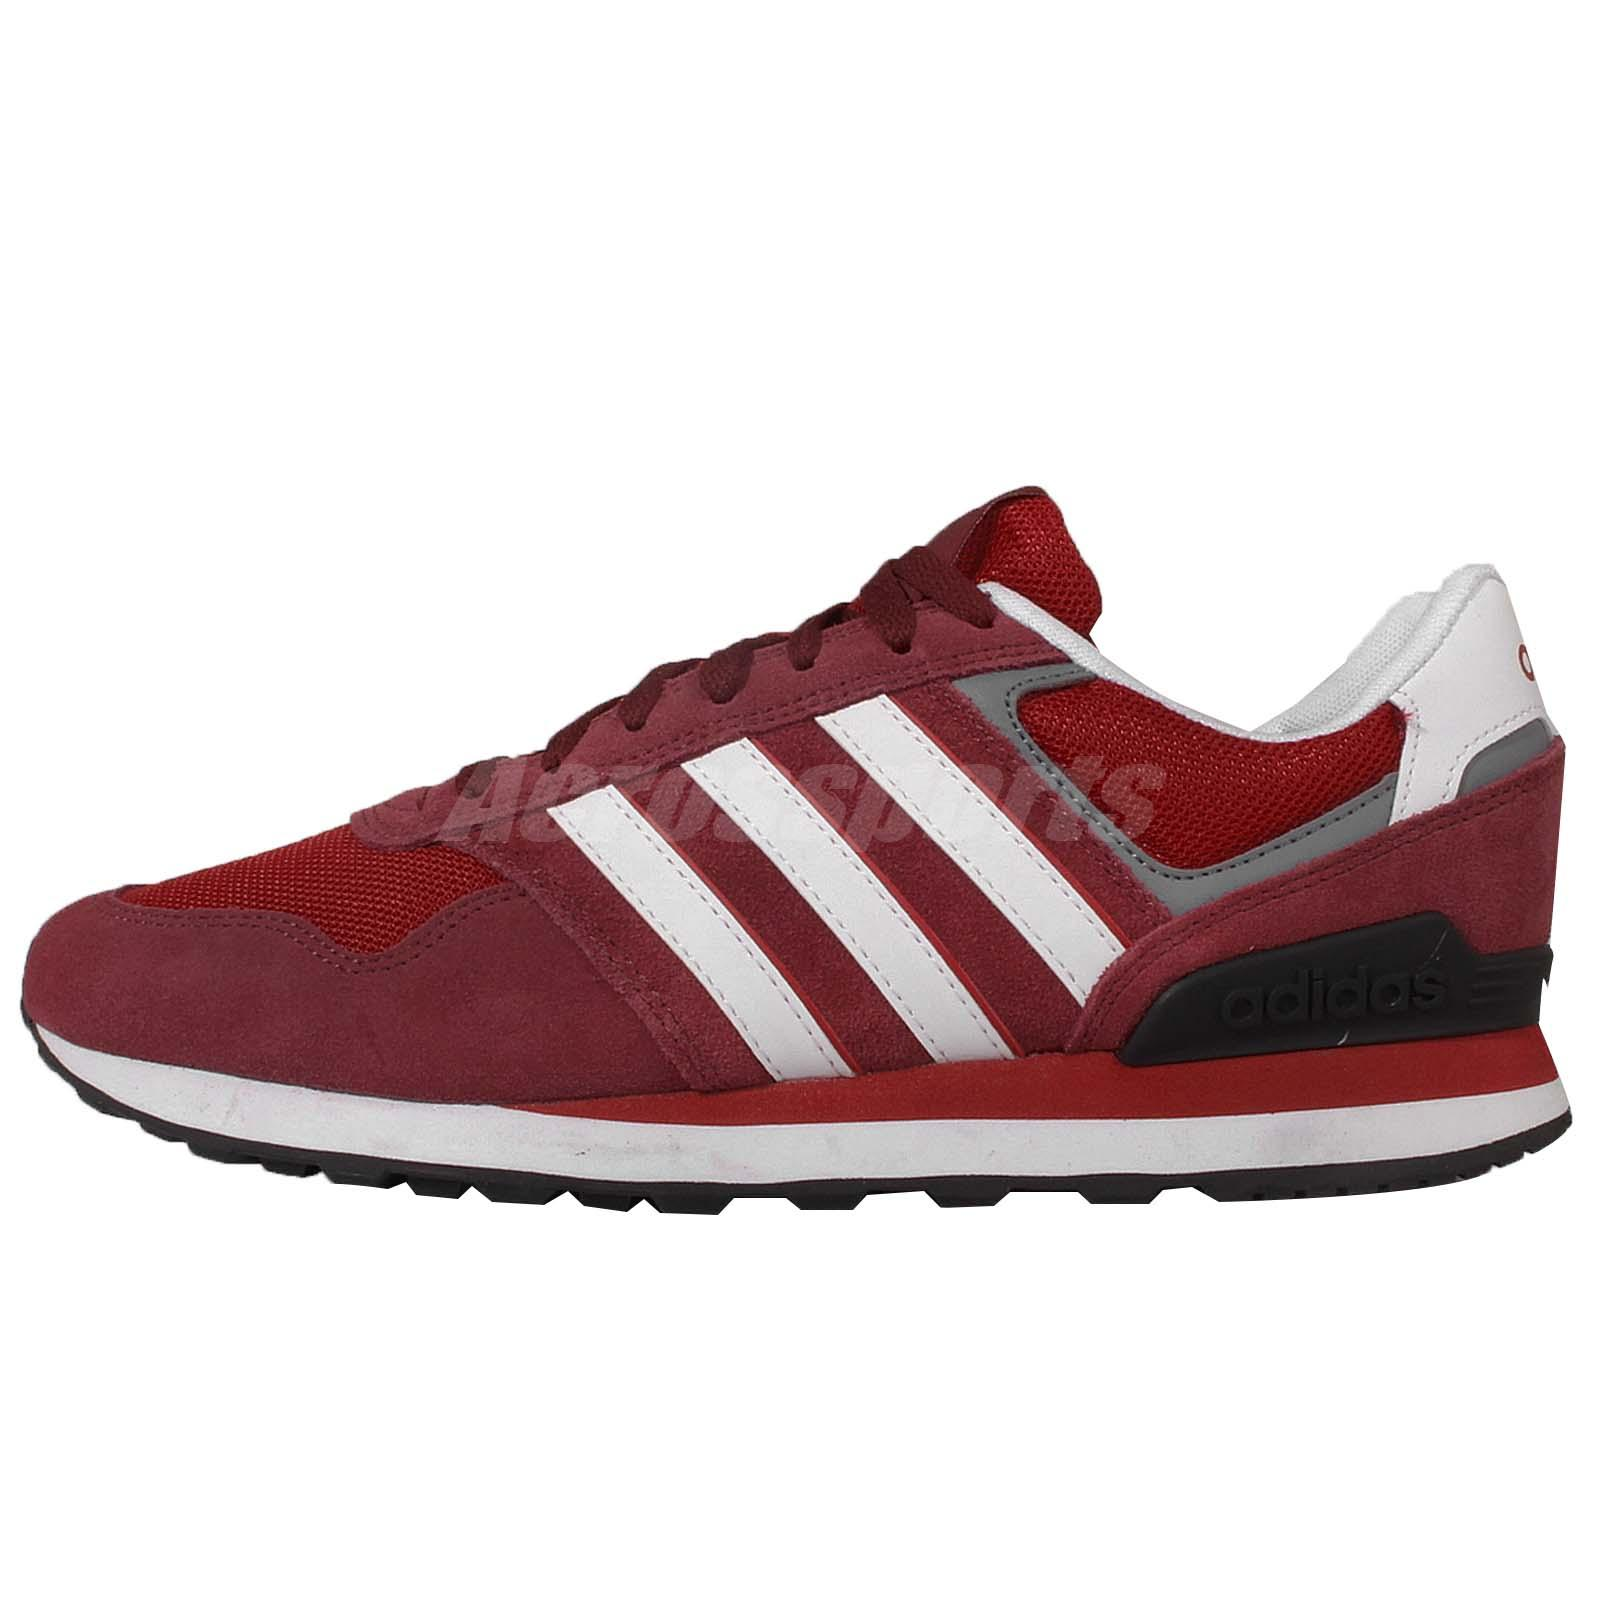 adidas neo label 10k red white suede mens casual shoes. Black Bedroom Furniture Sets. Home Design Ideas